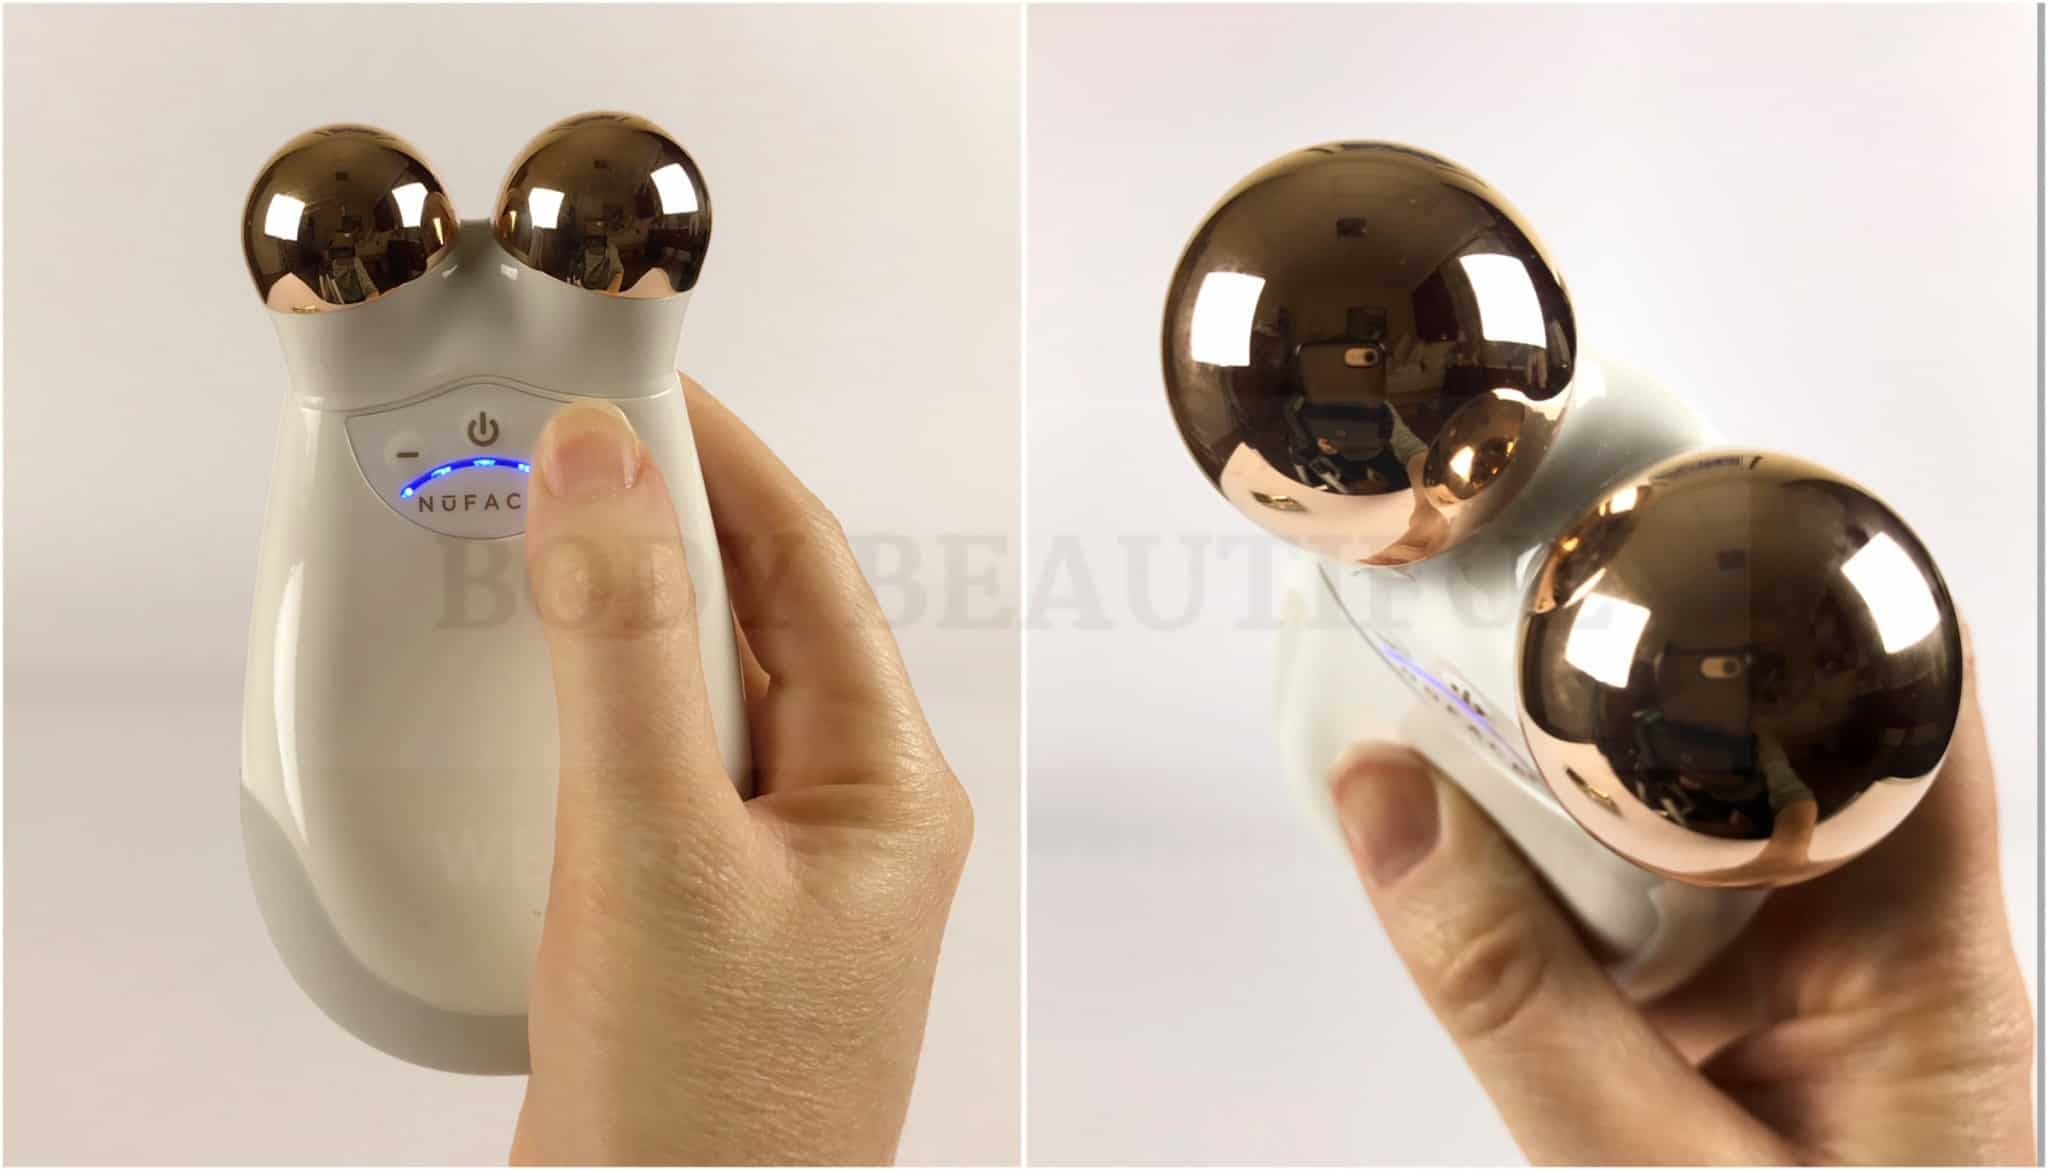 Nuface Trinity microcurrent anti-aging device review by WeAreBodyBeautiful.com - for a healthier, younger, lifted appearance.